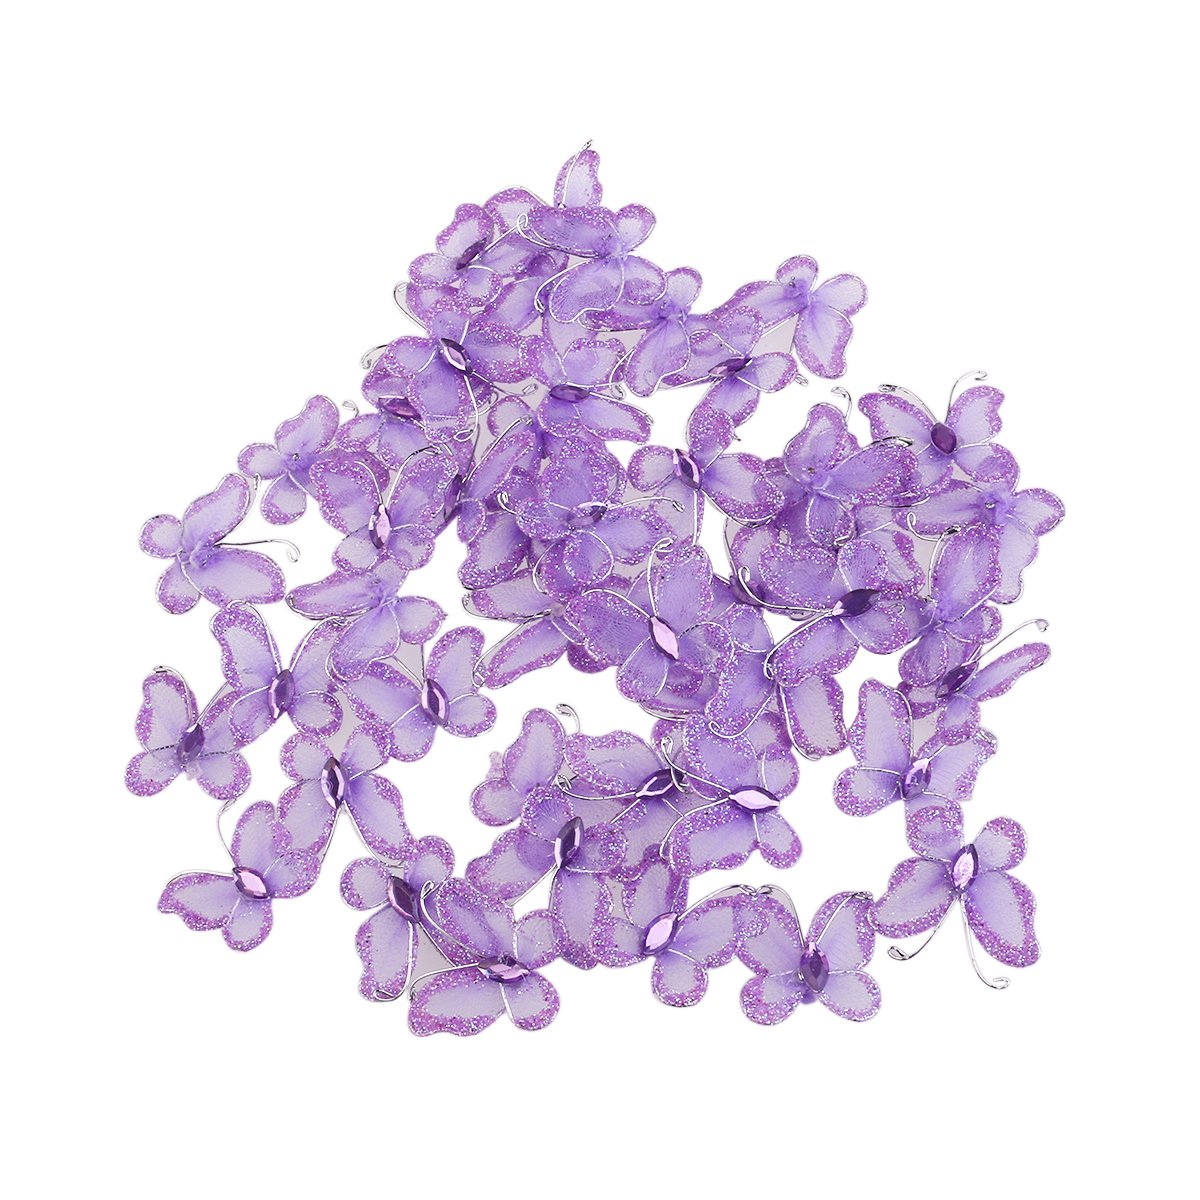 WINOMO Sheer Mesh Wire Glitter Butterfly with Gem - 50pcs (Purple)